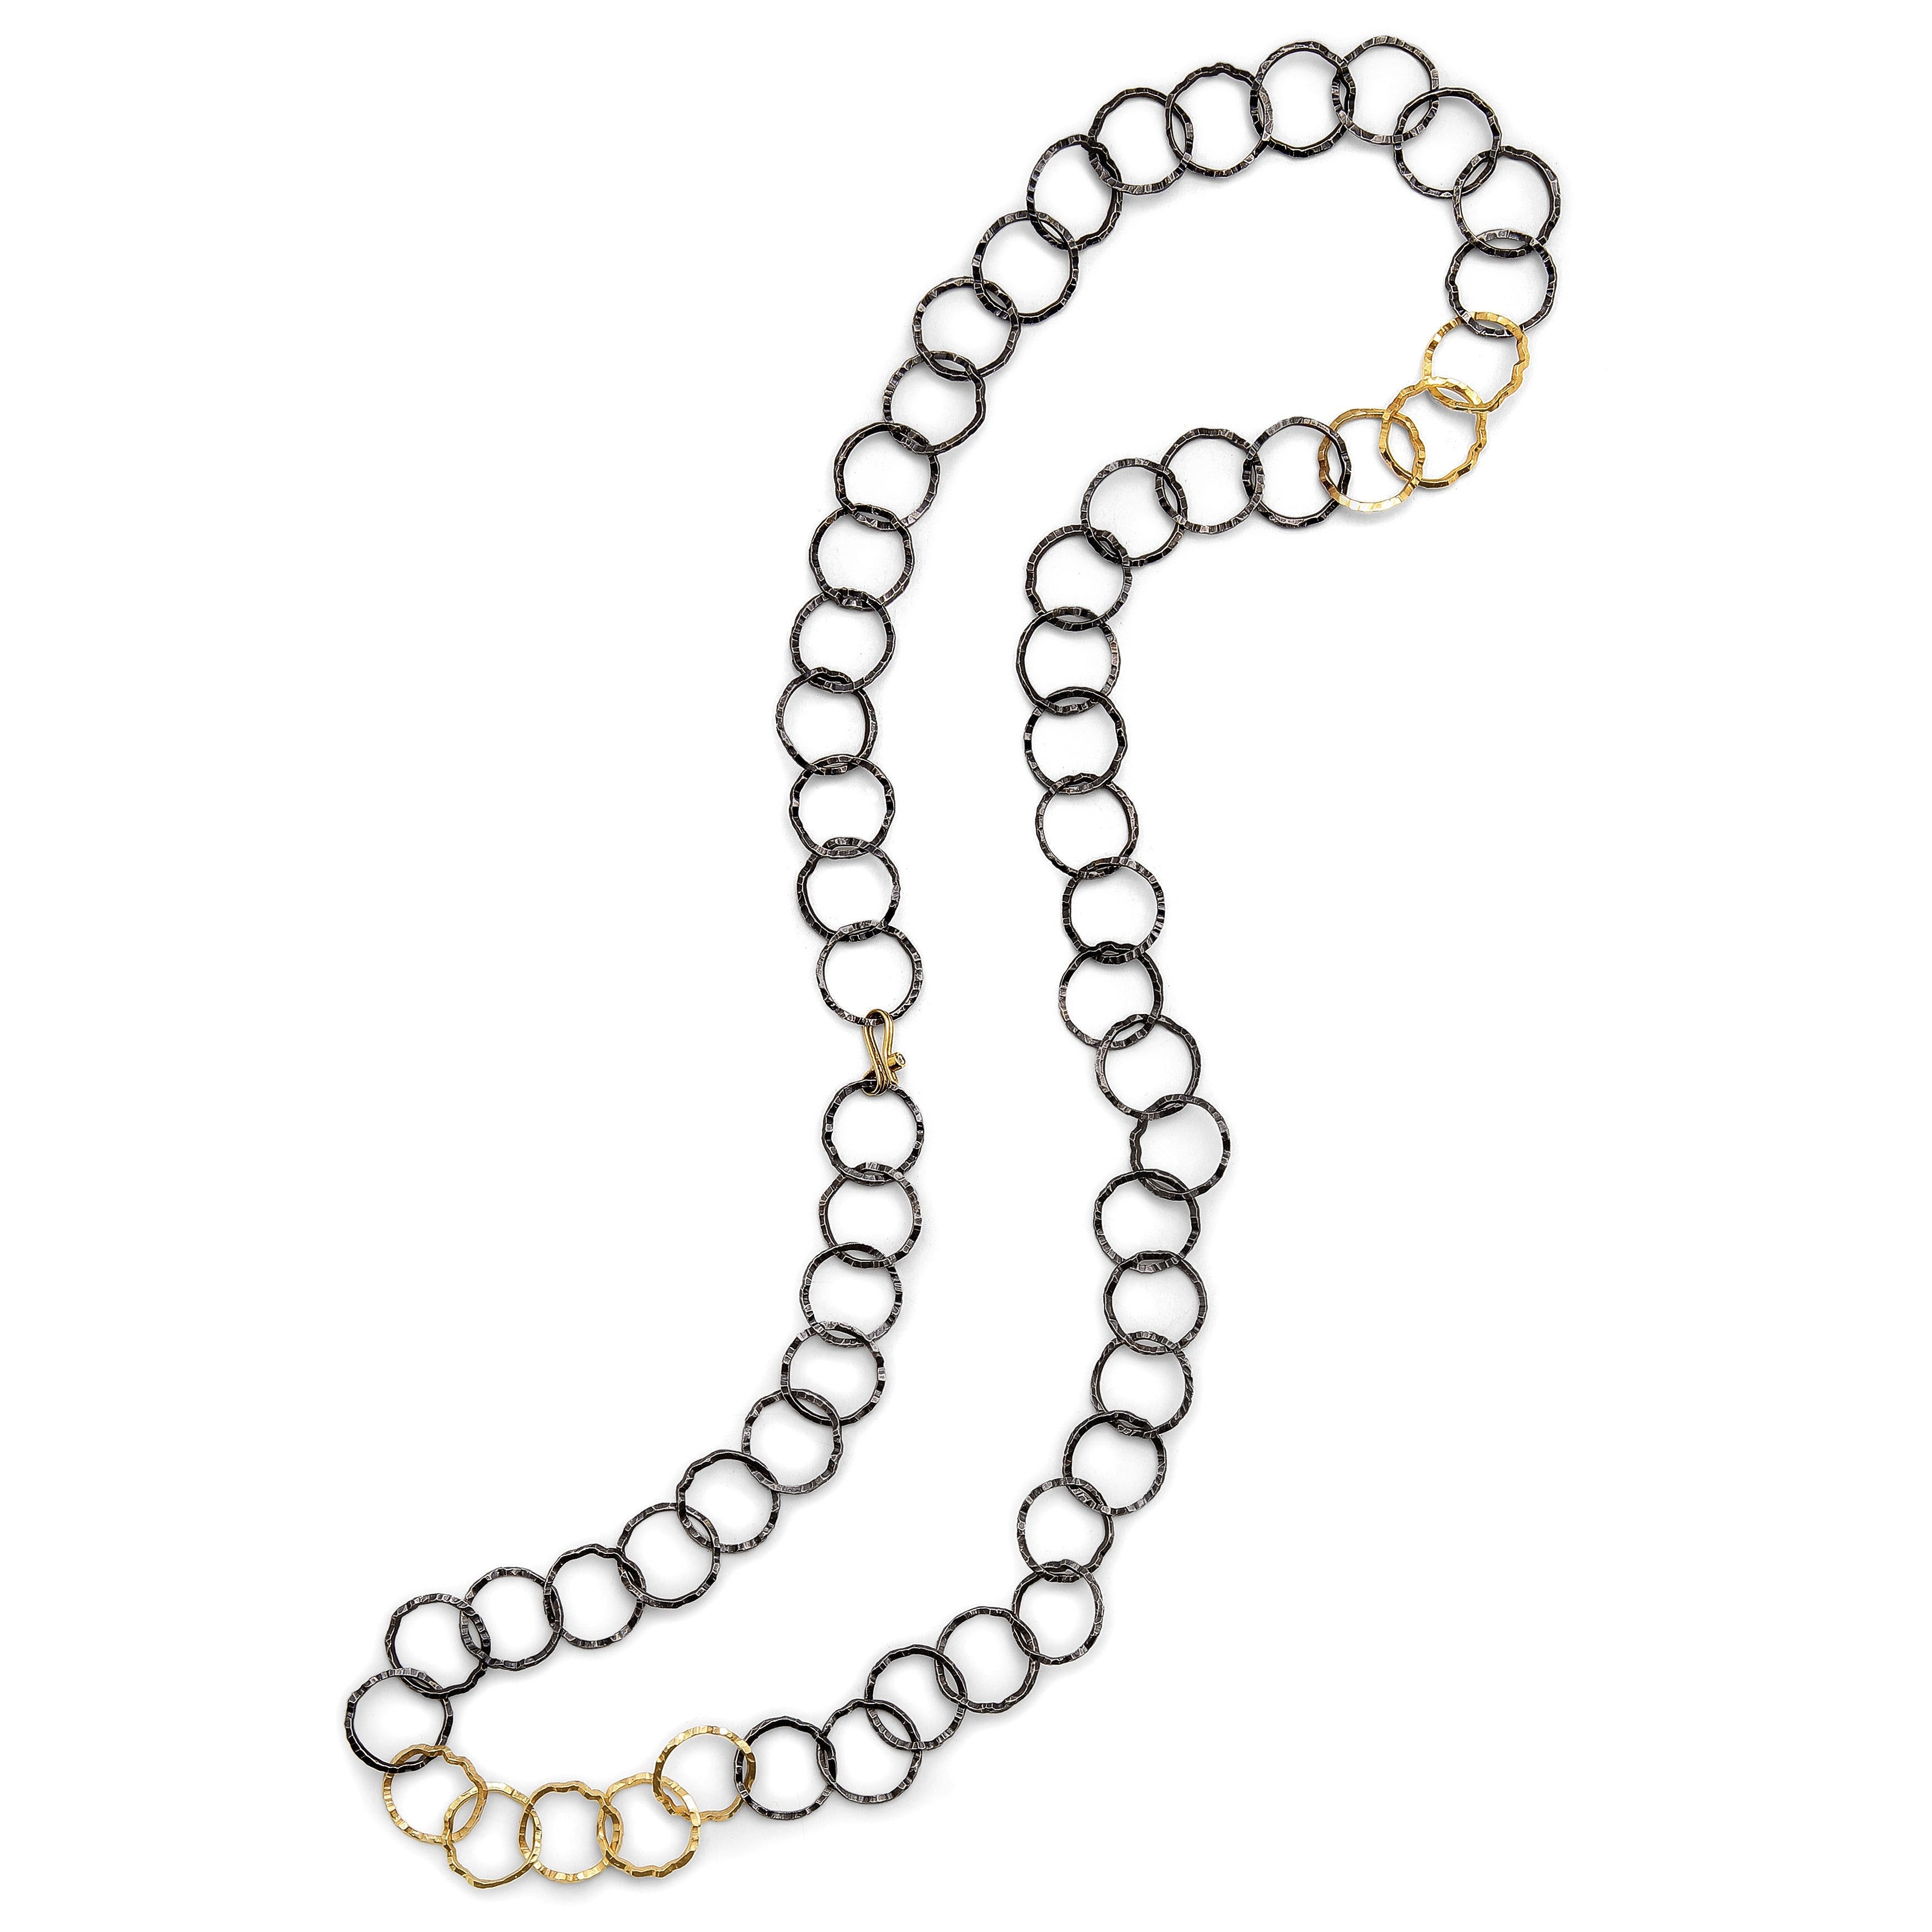 Open Silhouette Chain Convertible Necklace/Bracelet